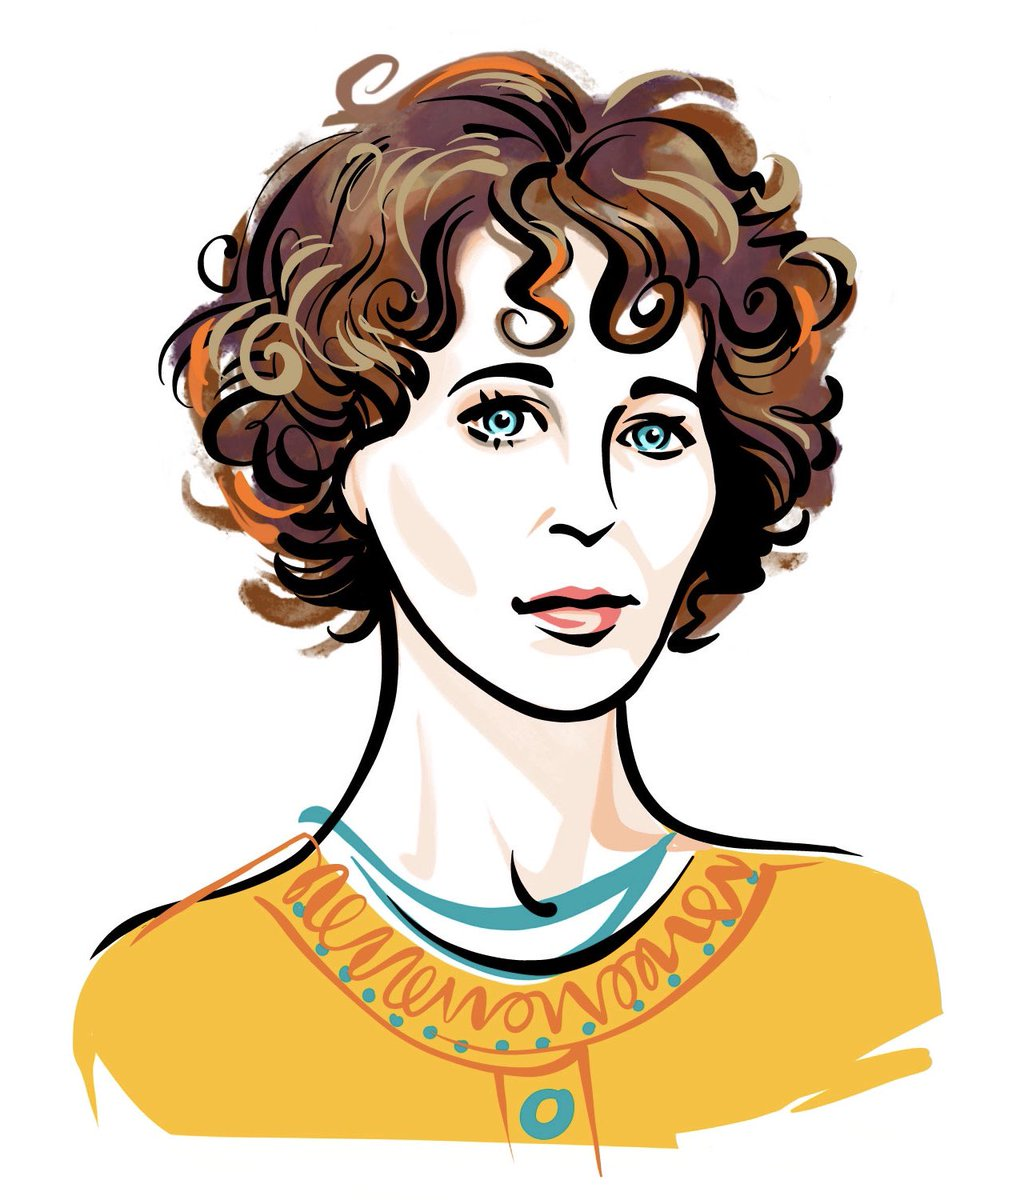 Next up in the book club: Miranda July!! A brilliant, funny, uncategorizable nonfiction book published by @mcsweeneys in 2011 https://t.co/u4PYBAezlj https://t.co/YZ4TeajXJ6